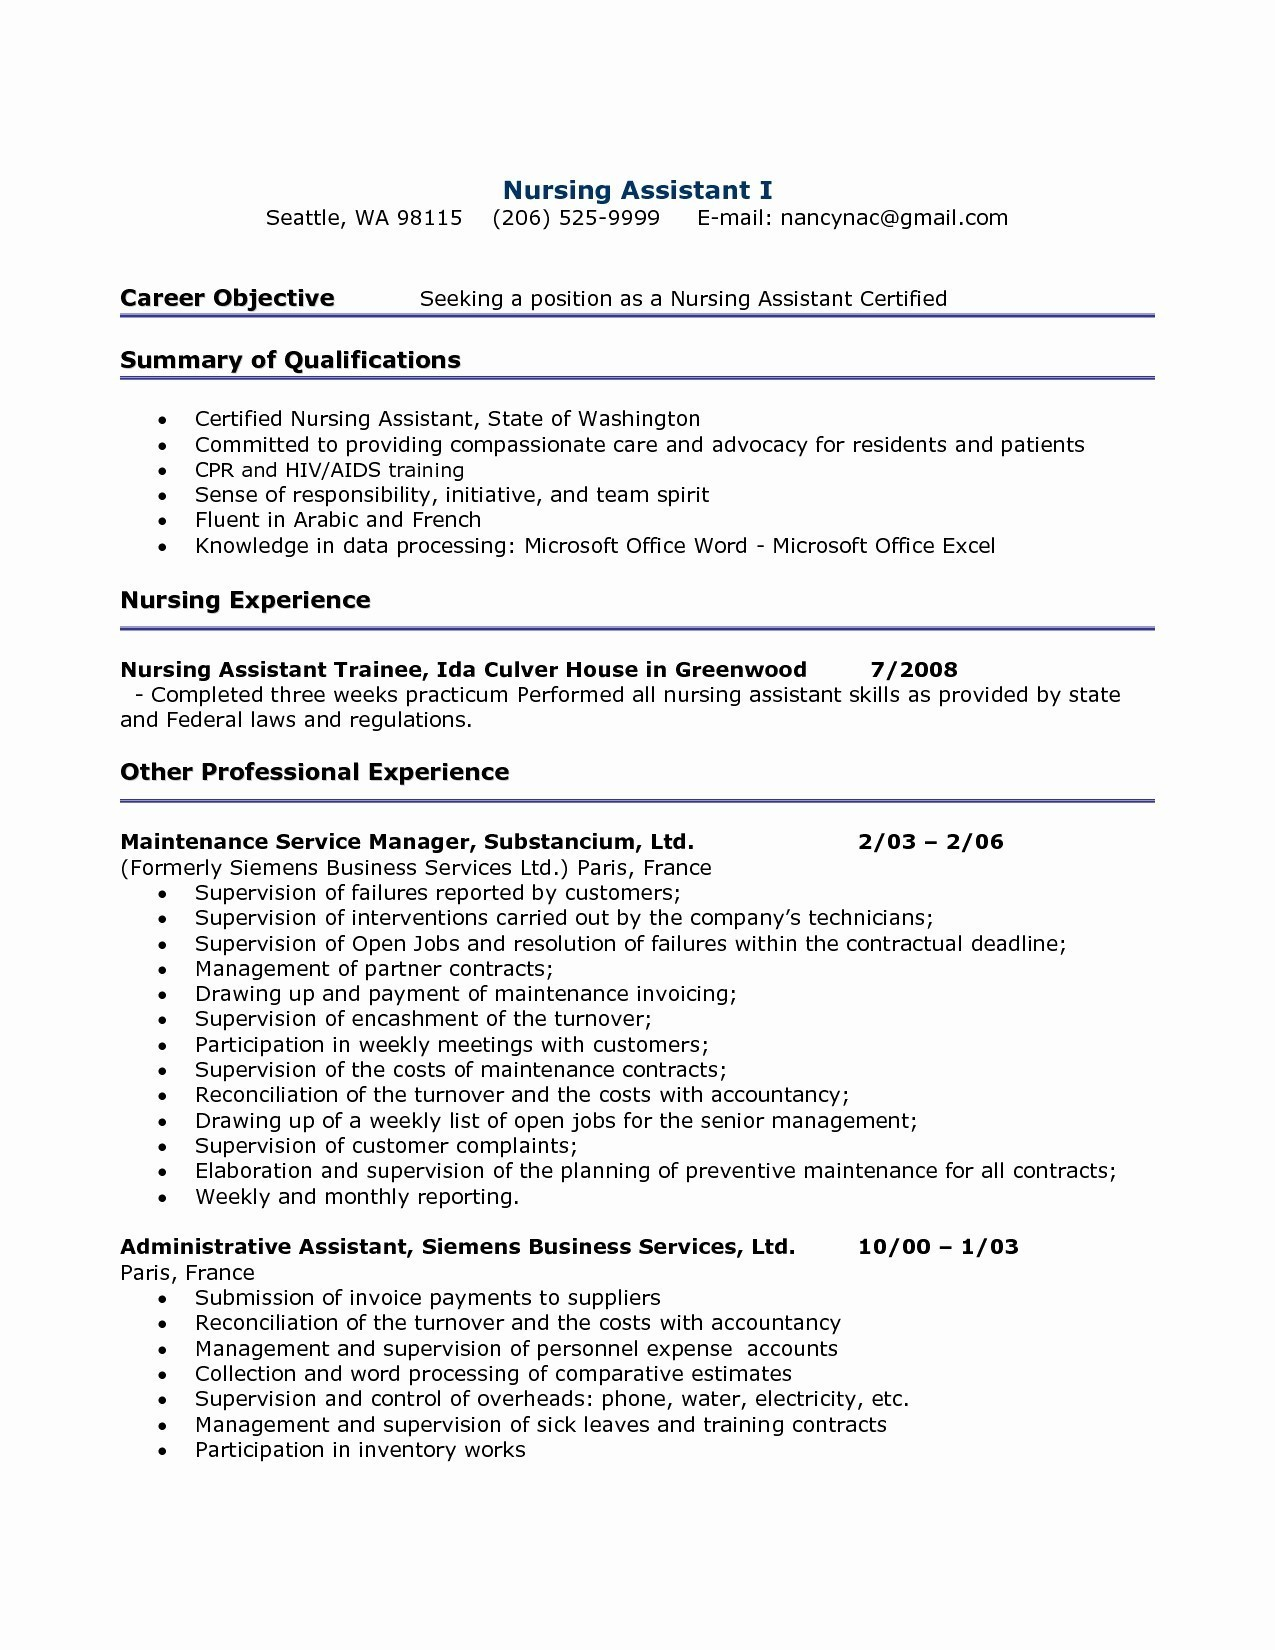 Resume and Cover Letter Template - Fice Resume Templates Unique Resume New Cover Letter Template